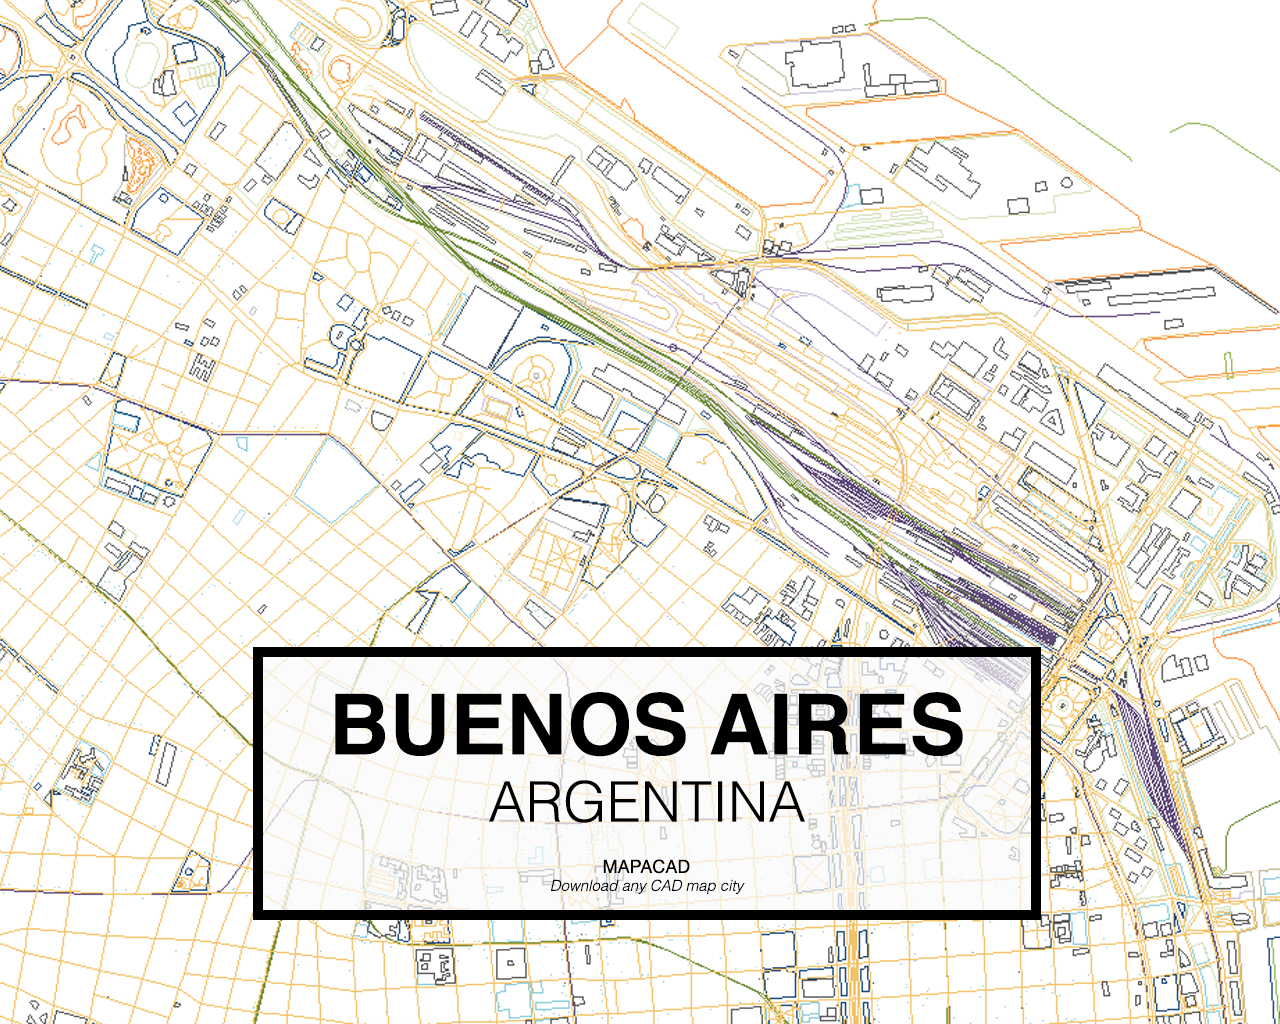 Buenos AiresDWG Mapacad - Argentina map download